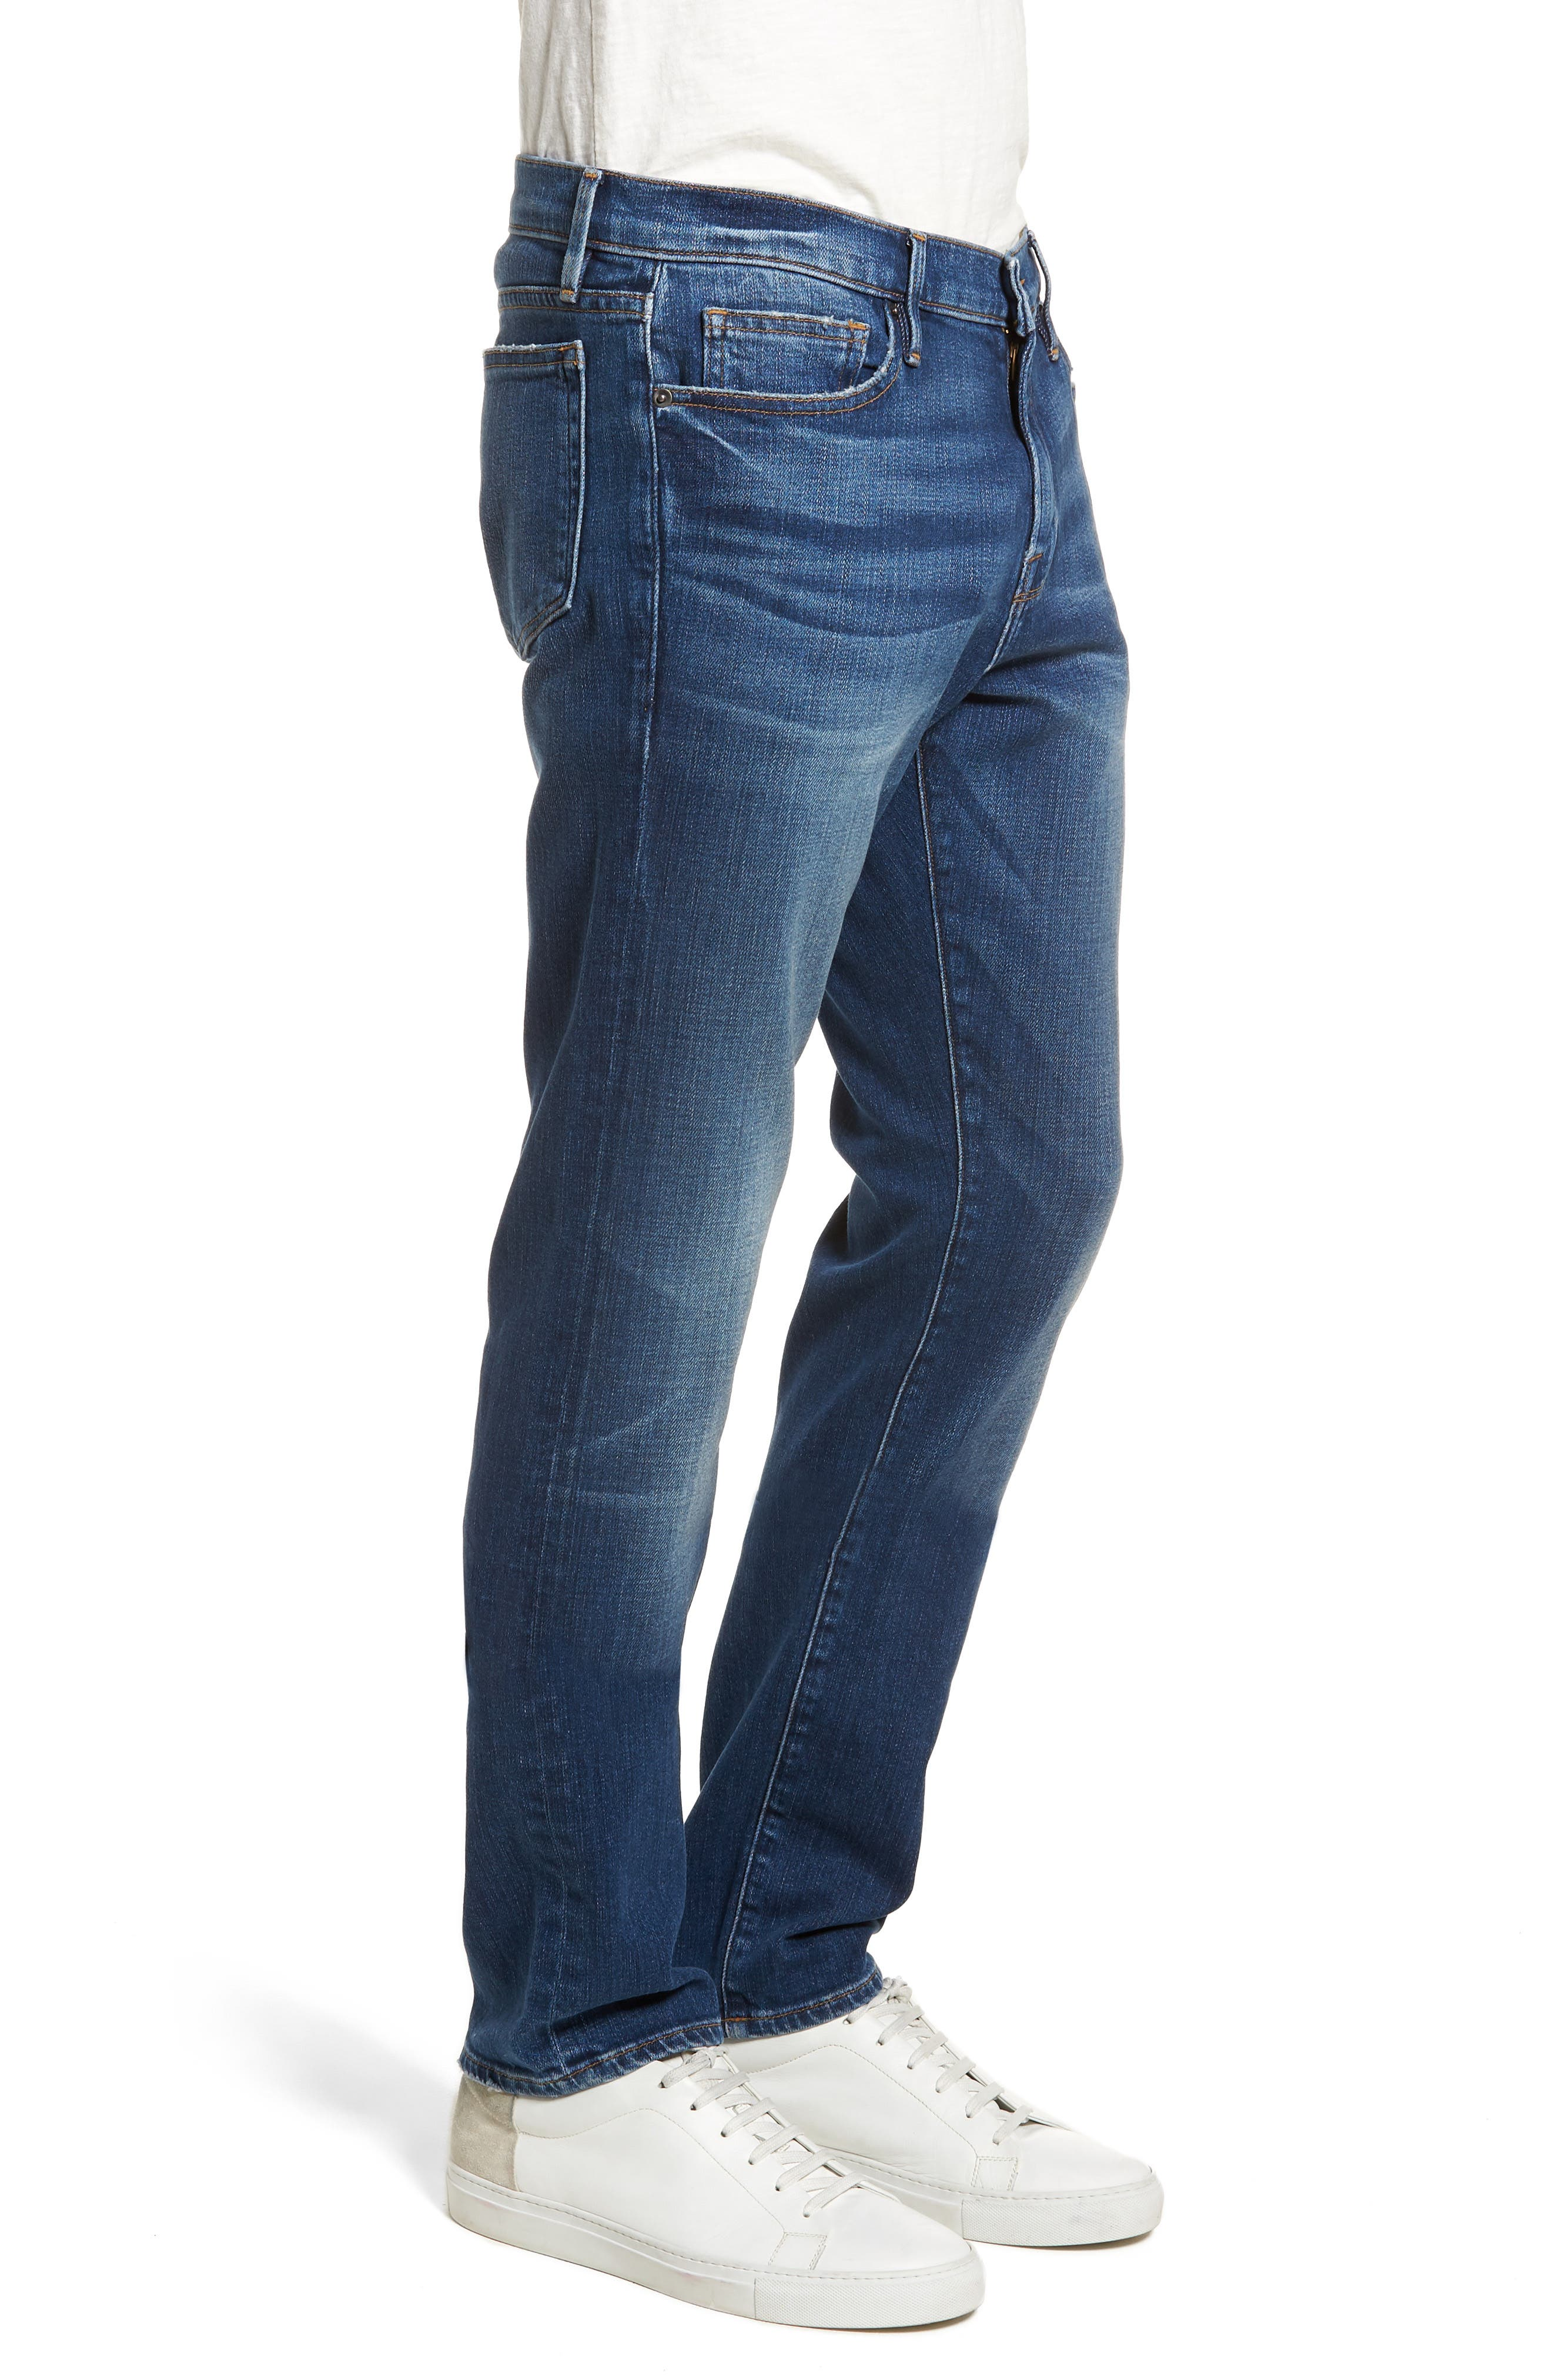 L'Homme Skinny Fit Jeans,                             Alternate thumbnail 3, color,                             Francis